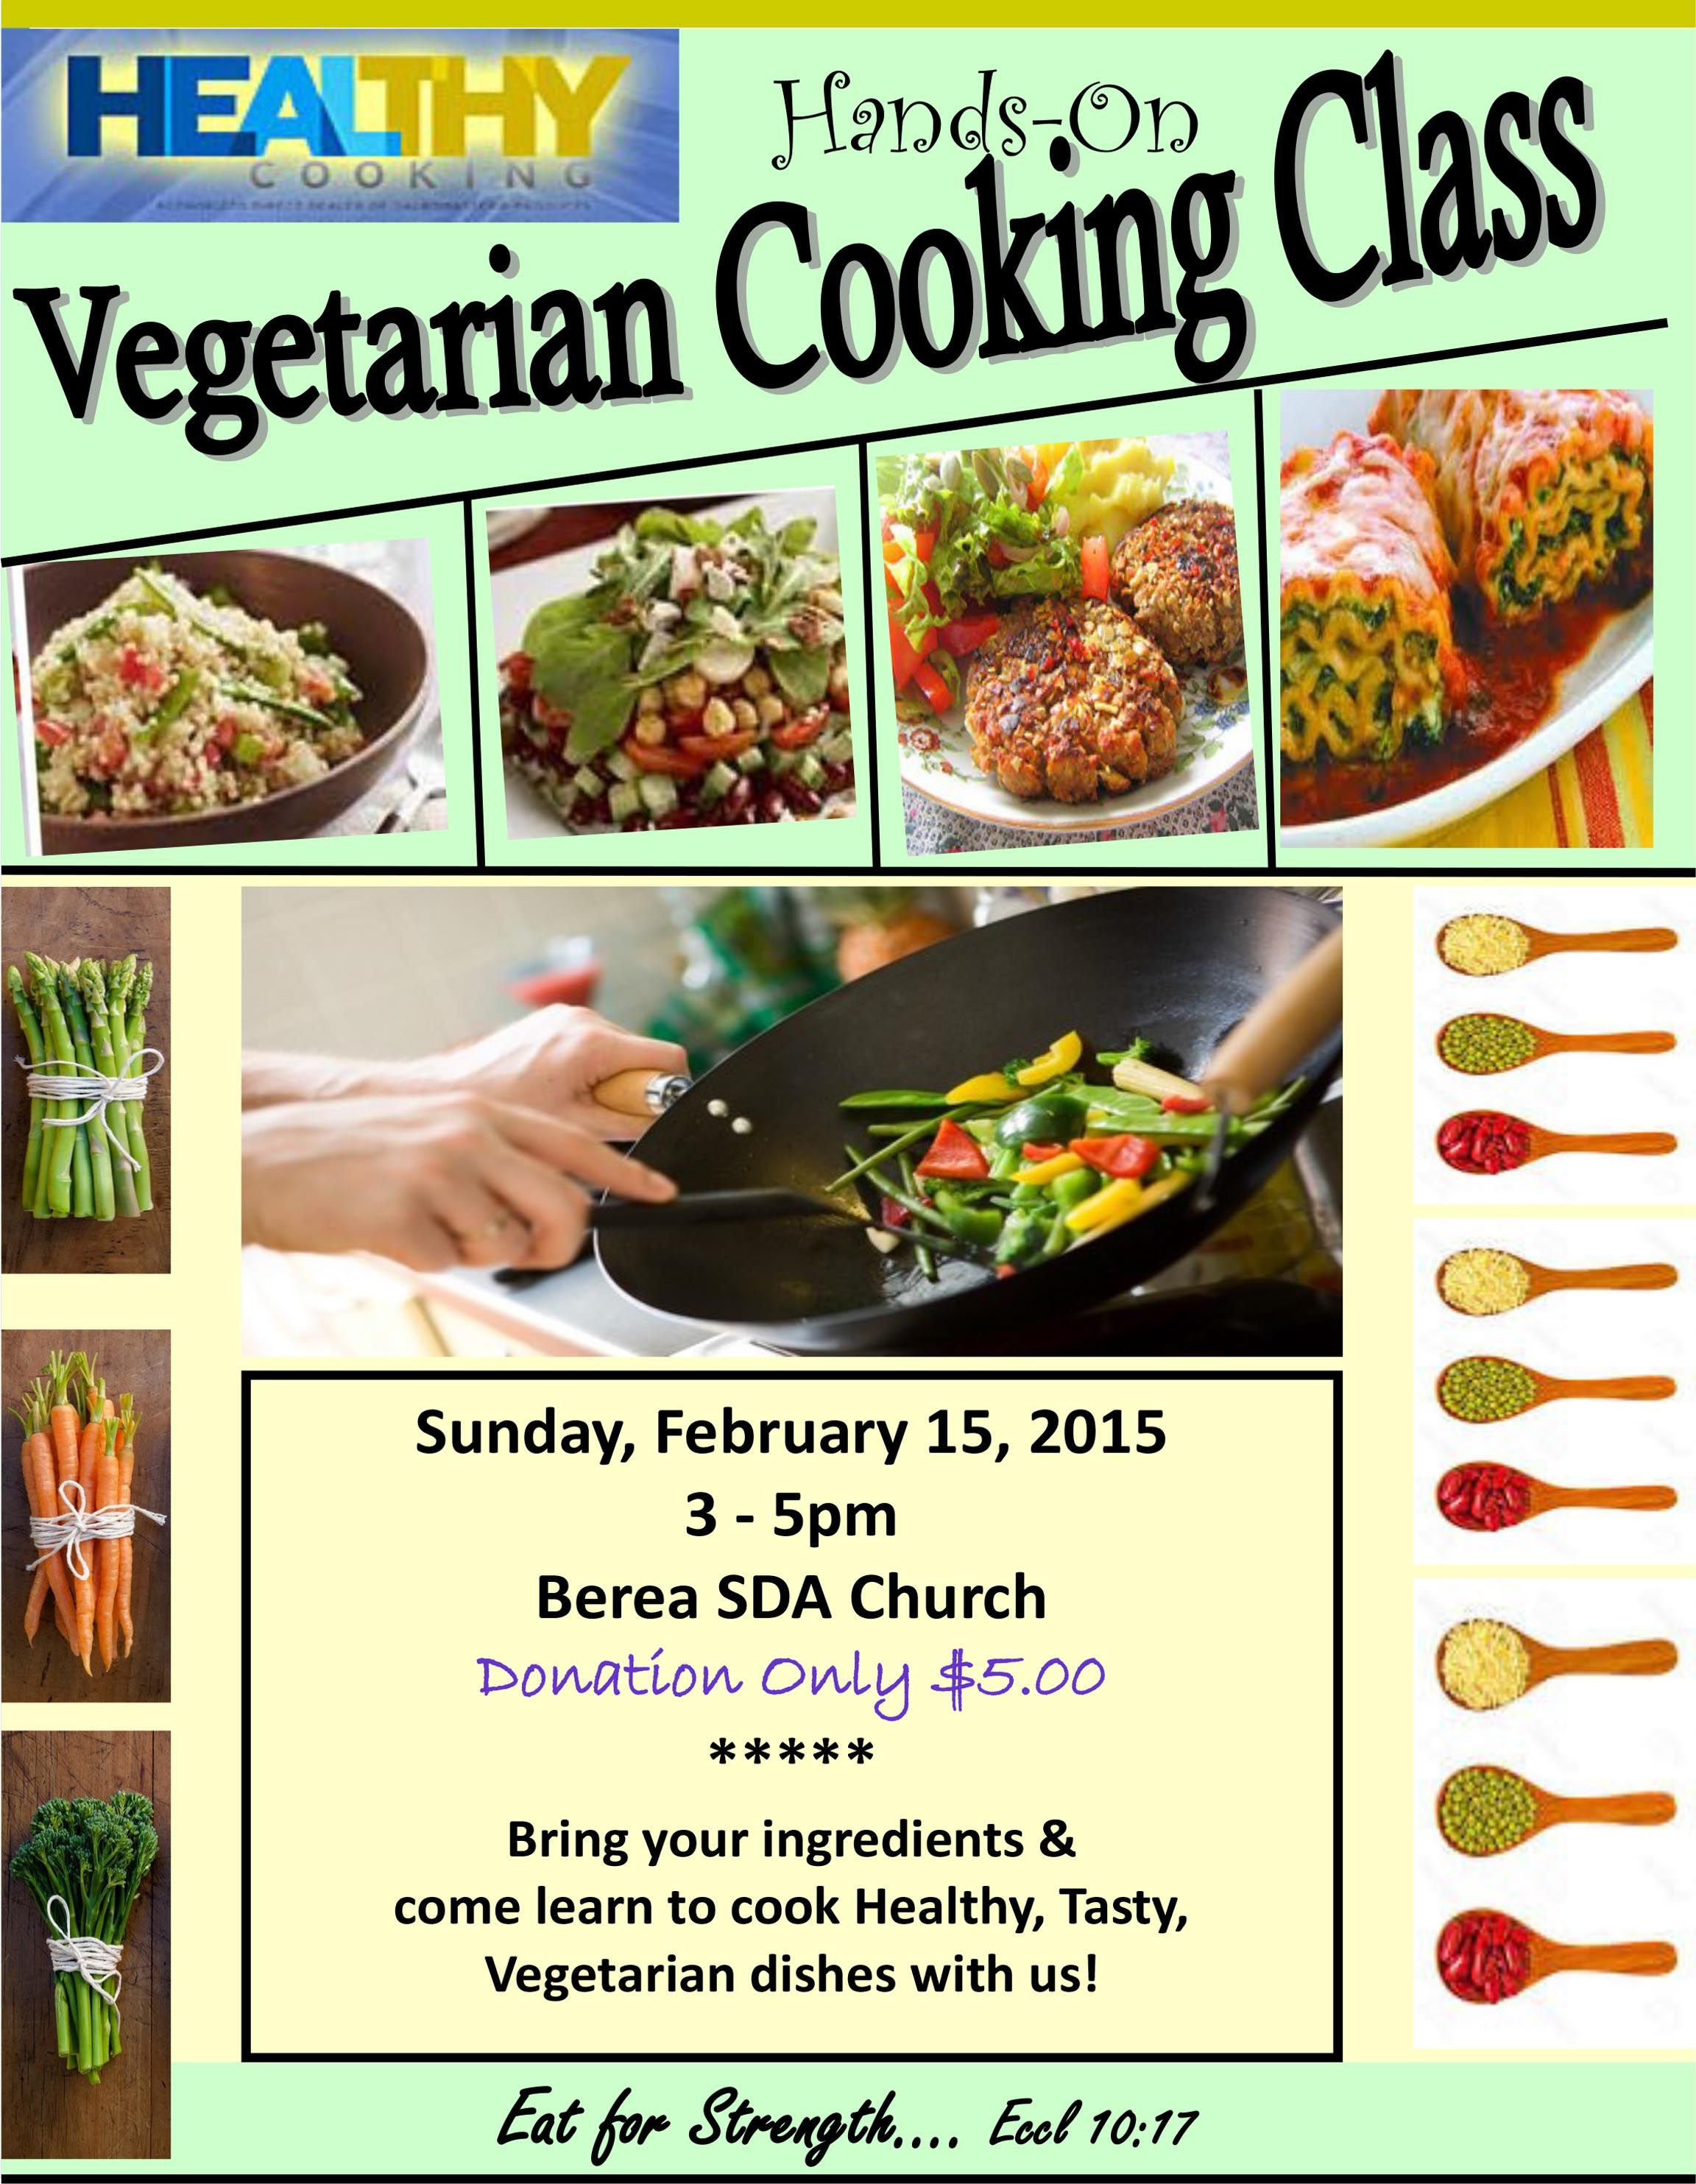 2015 cooking class flyer vegetarian cooking classes. Black Bedroom Furniture Sets. Home Design Ideas